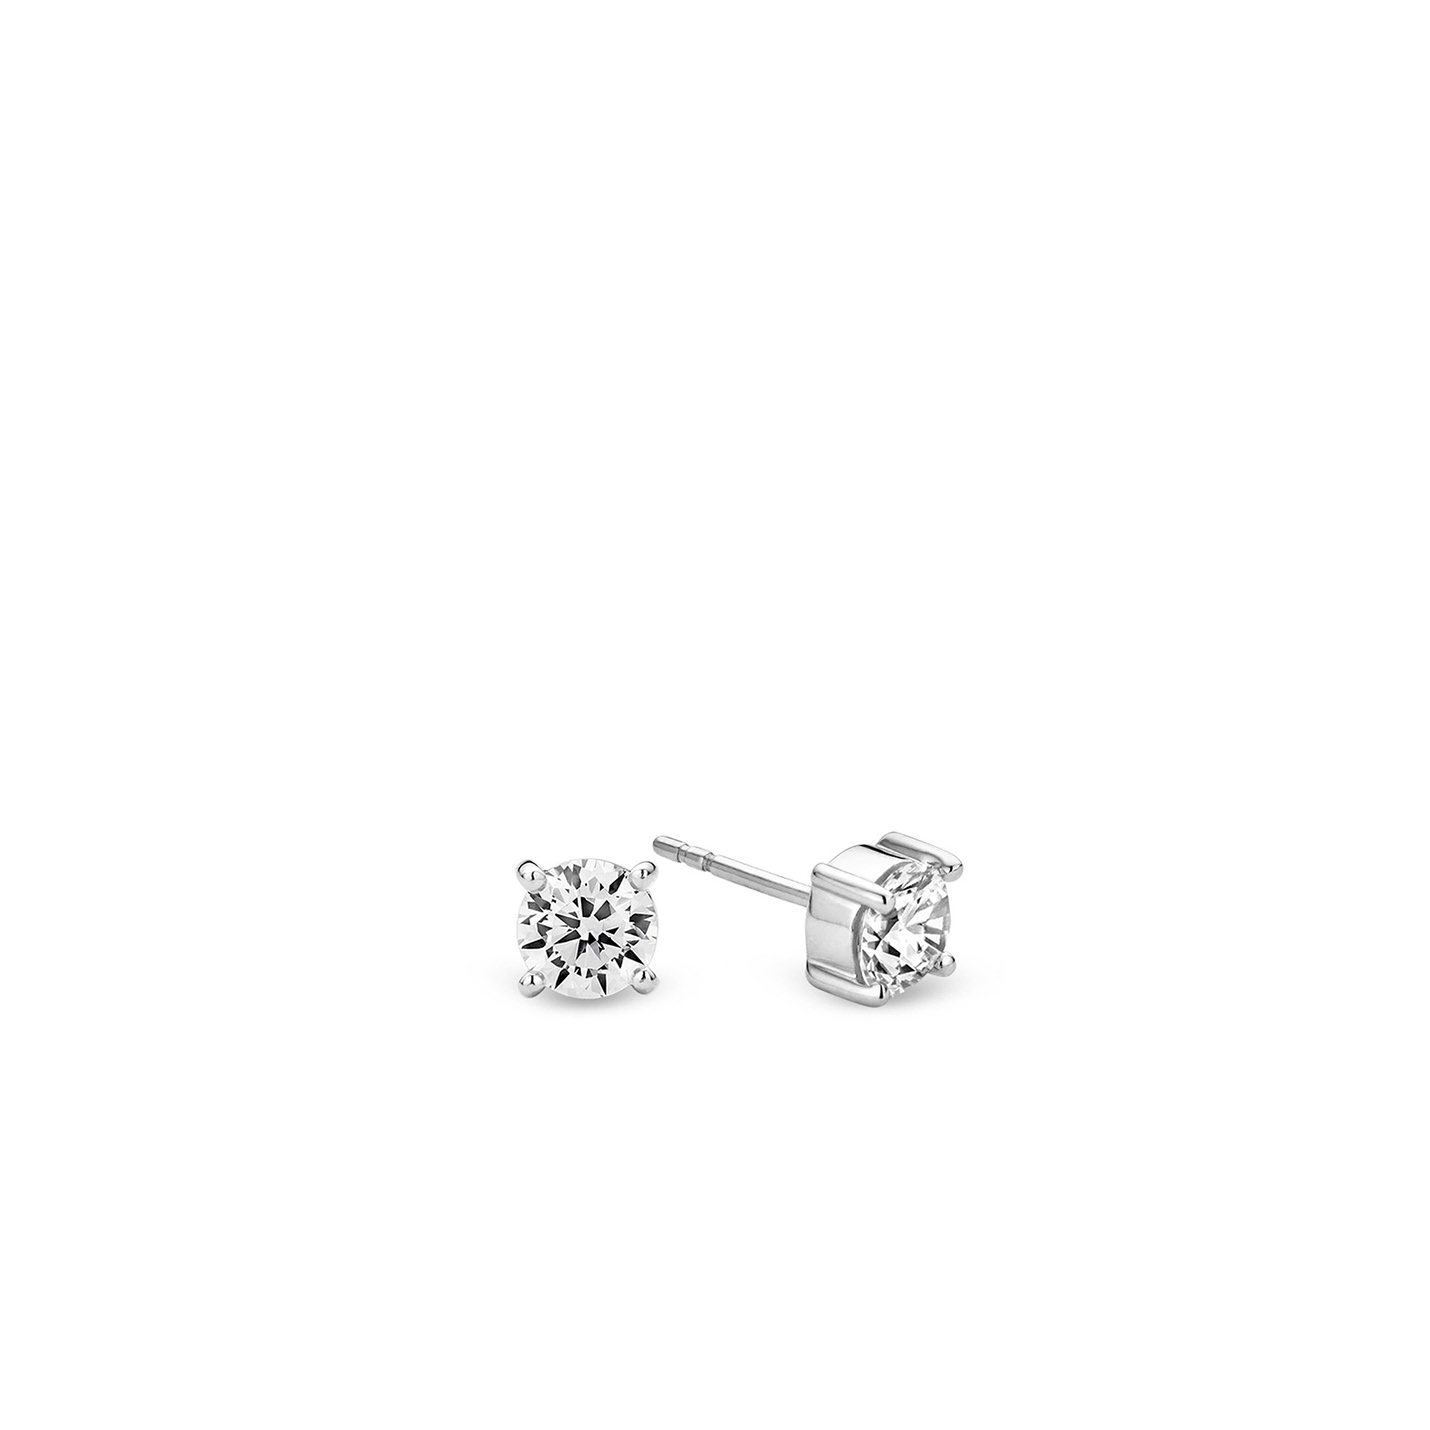 Ti Sento Silver & CZ Stud Earrings